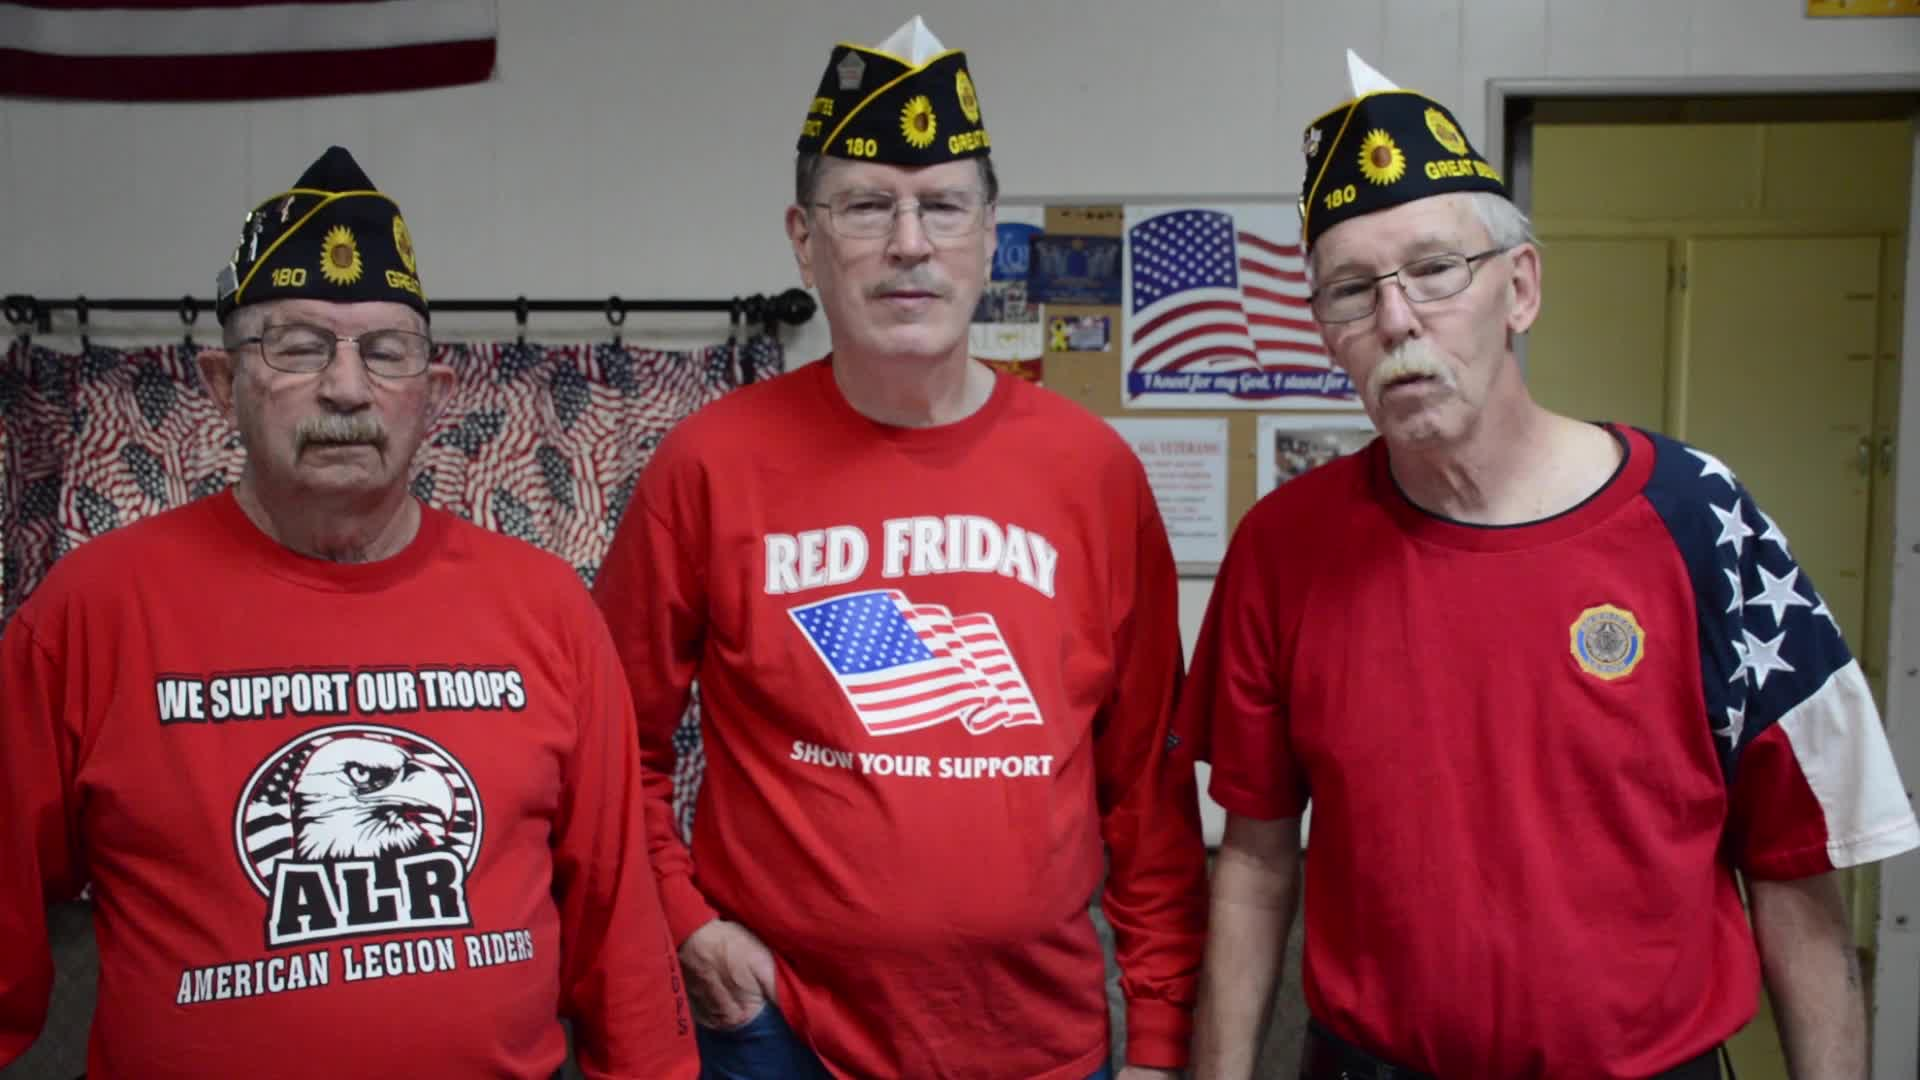 Members of the American Legion #180 wish the United States Army Reserve a happy birthday, April 9, 2021 in Great Bend, KS.